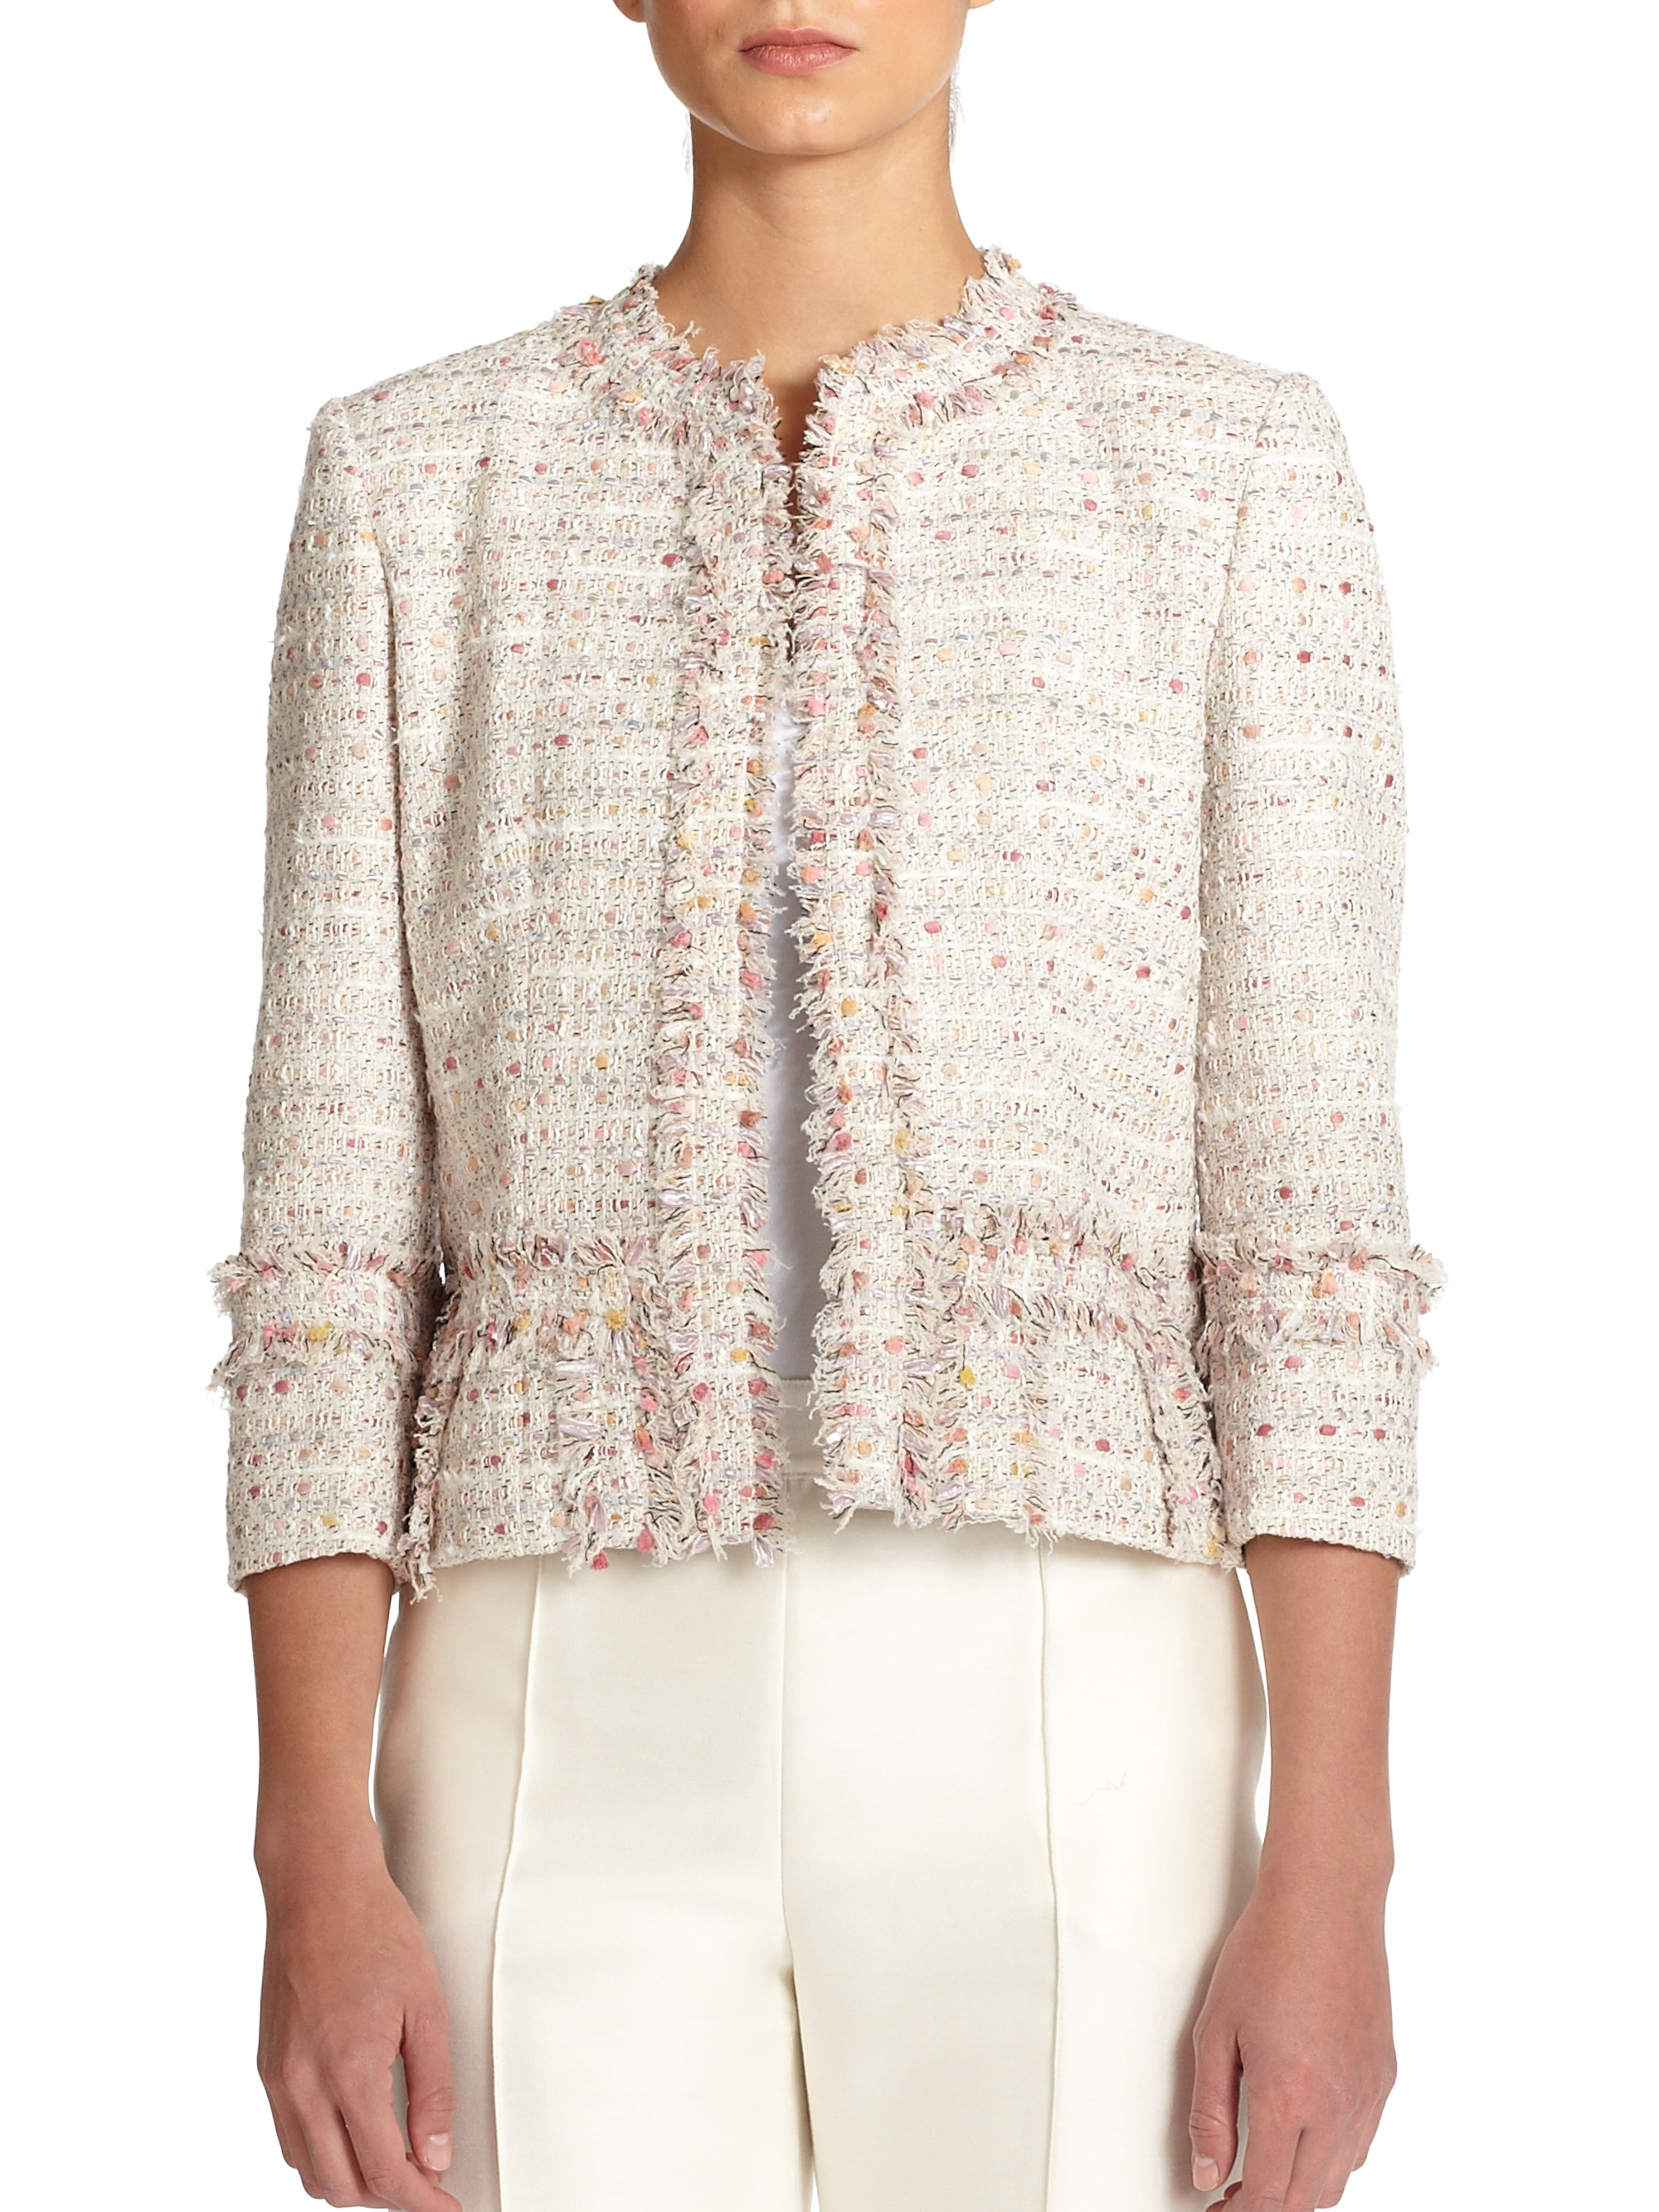 Lyst - Carolina herrera Boucle Jacket in Natural